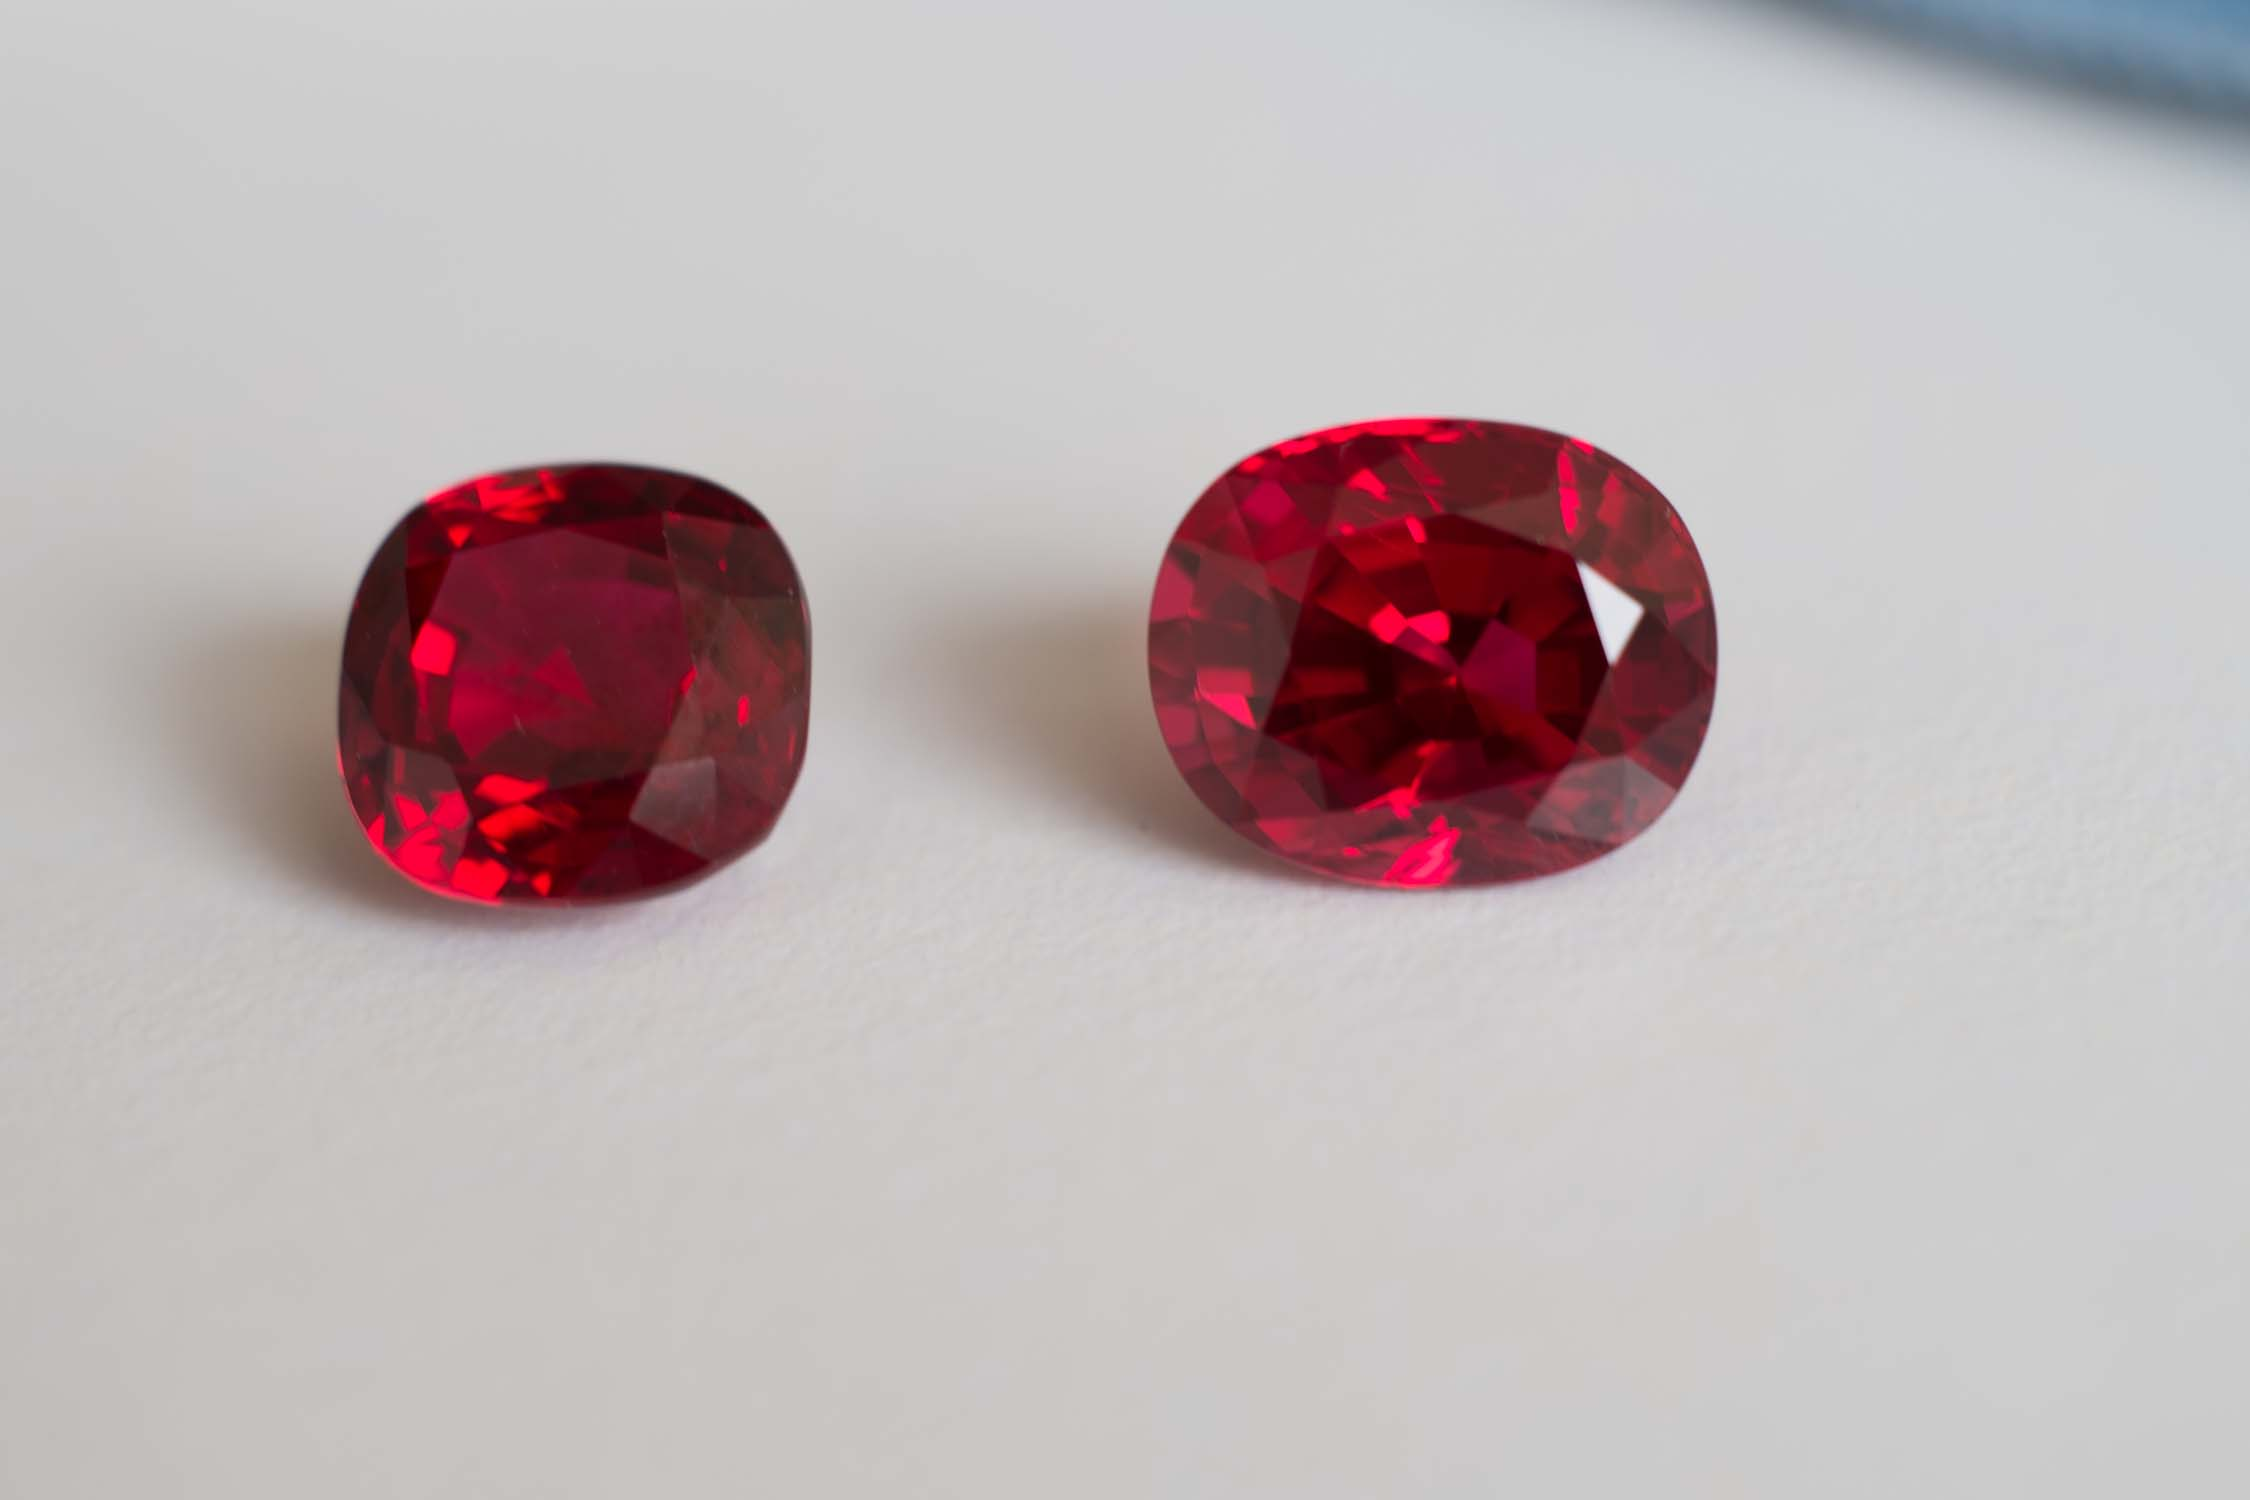 Good examples of red orange spinel.